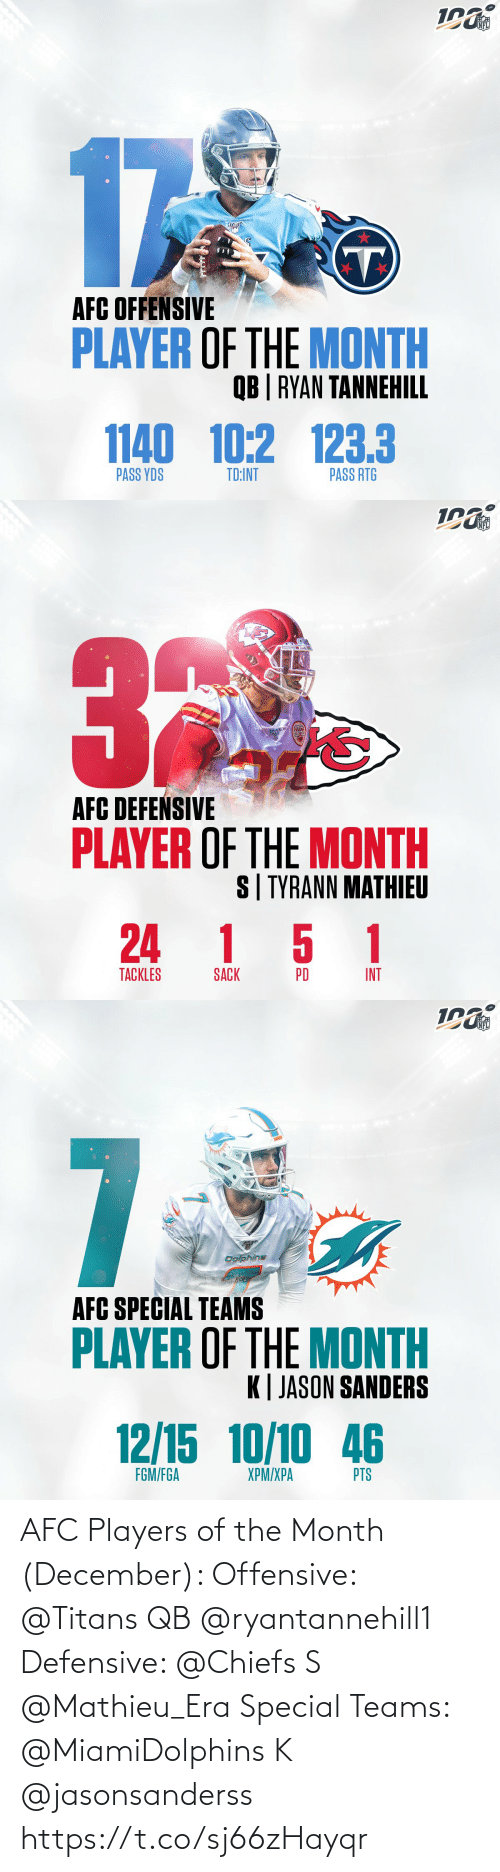 K: NFL  17  AFC OFFENSIVE  PLAYER OF THE MONTH  QB | RYAN TANNEHILL  1140 10:2 123.3  PASS RTG  PASS YDS  TD:INT   NFL  AFC DEFEŃSIVE  PLAYER OF THE MONTH  S| TYRANN MATHIEU  24 1 5 1  TACKLES  INT  PD  SACK   NFL  7  Dolphins  AFC SPECIAL TEAMS  PLAYER OF THE MONTH  K| JASON SANDERS  12/15 10/10 46  FGM/FGA  XPM/XPA  PTS AFC Players of the Month (December):   Offensive: @Titans QB @ryantannehill1    Defensive: @Chiefs S @Mathieu_Era   Special Teams: @MiamiDolphins K @jasonsanderss https://t.co/sj66zHayqr